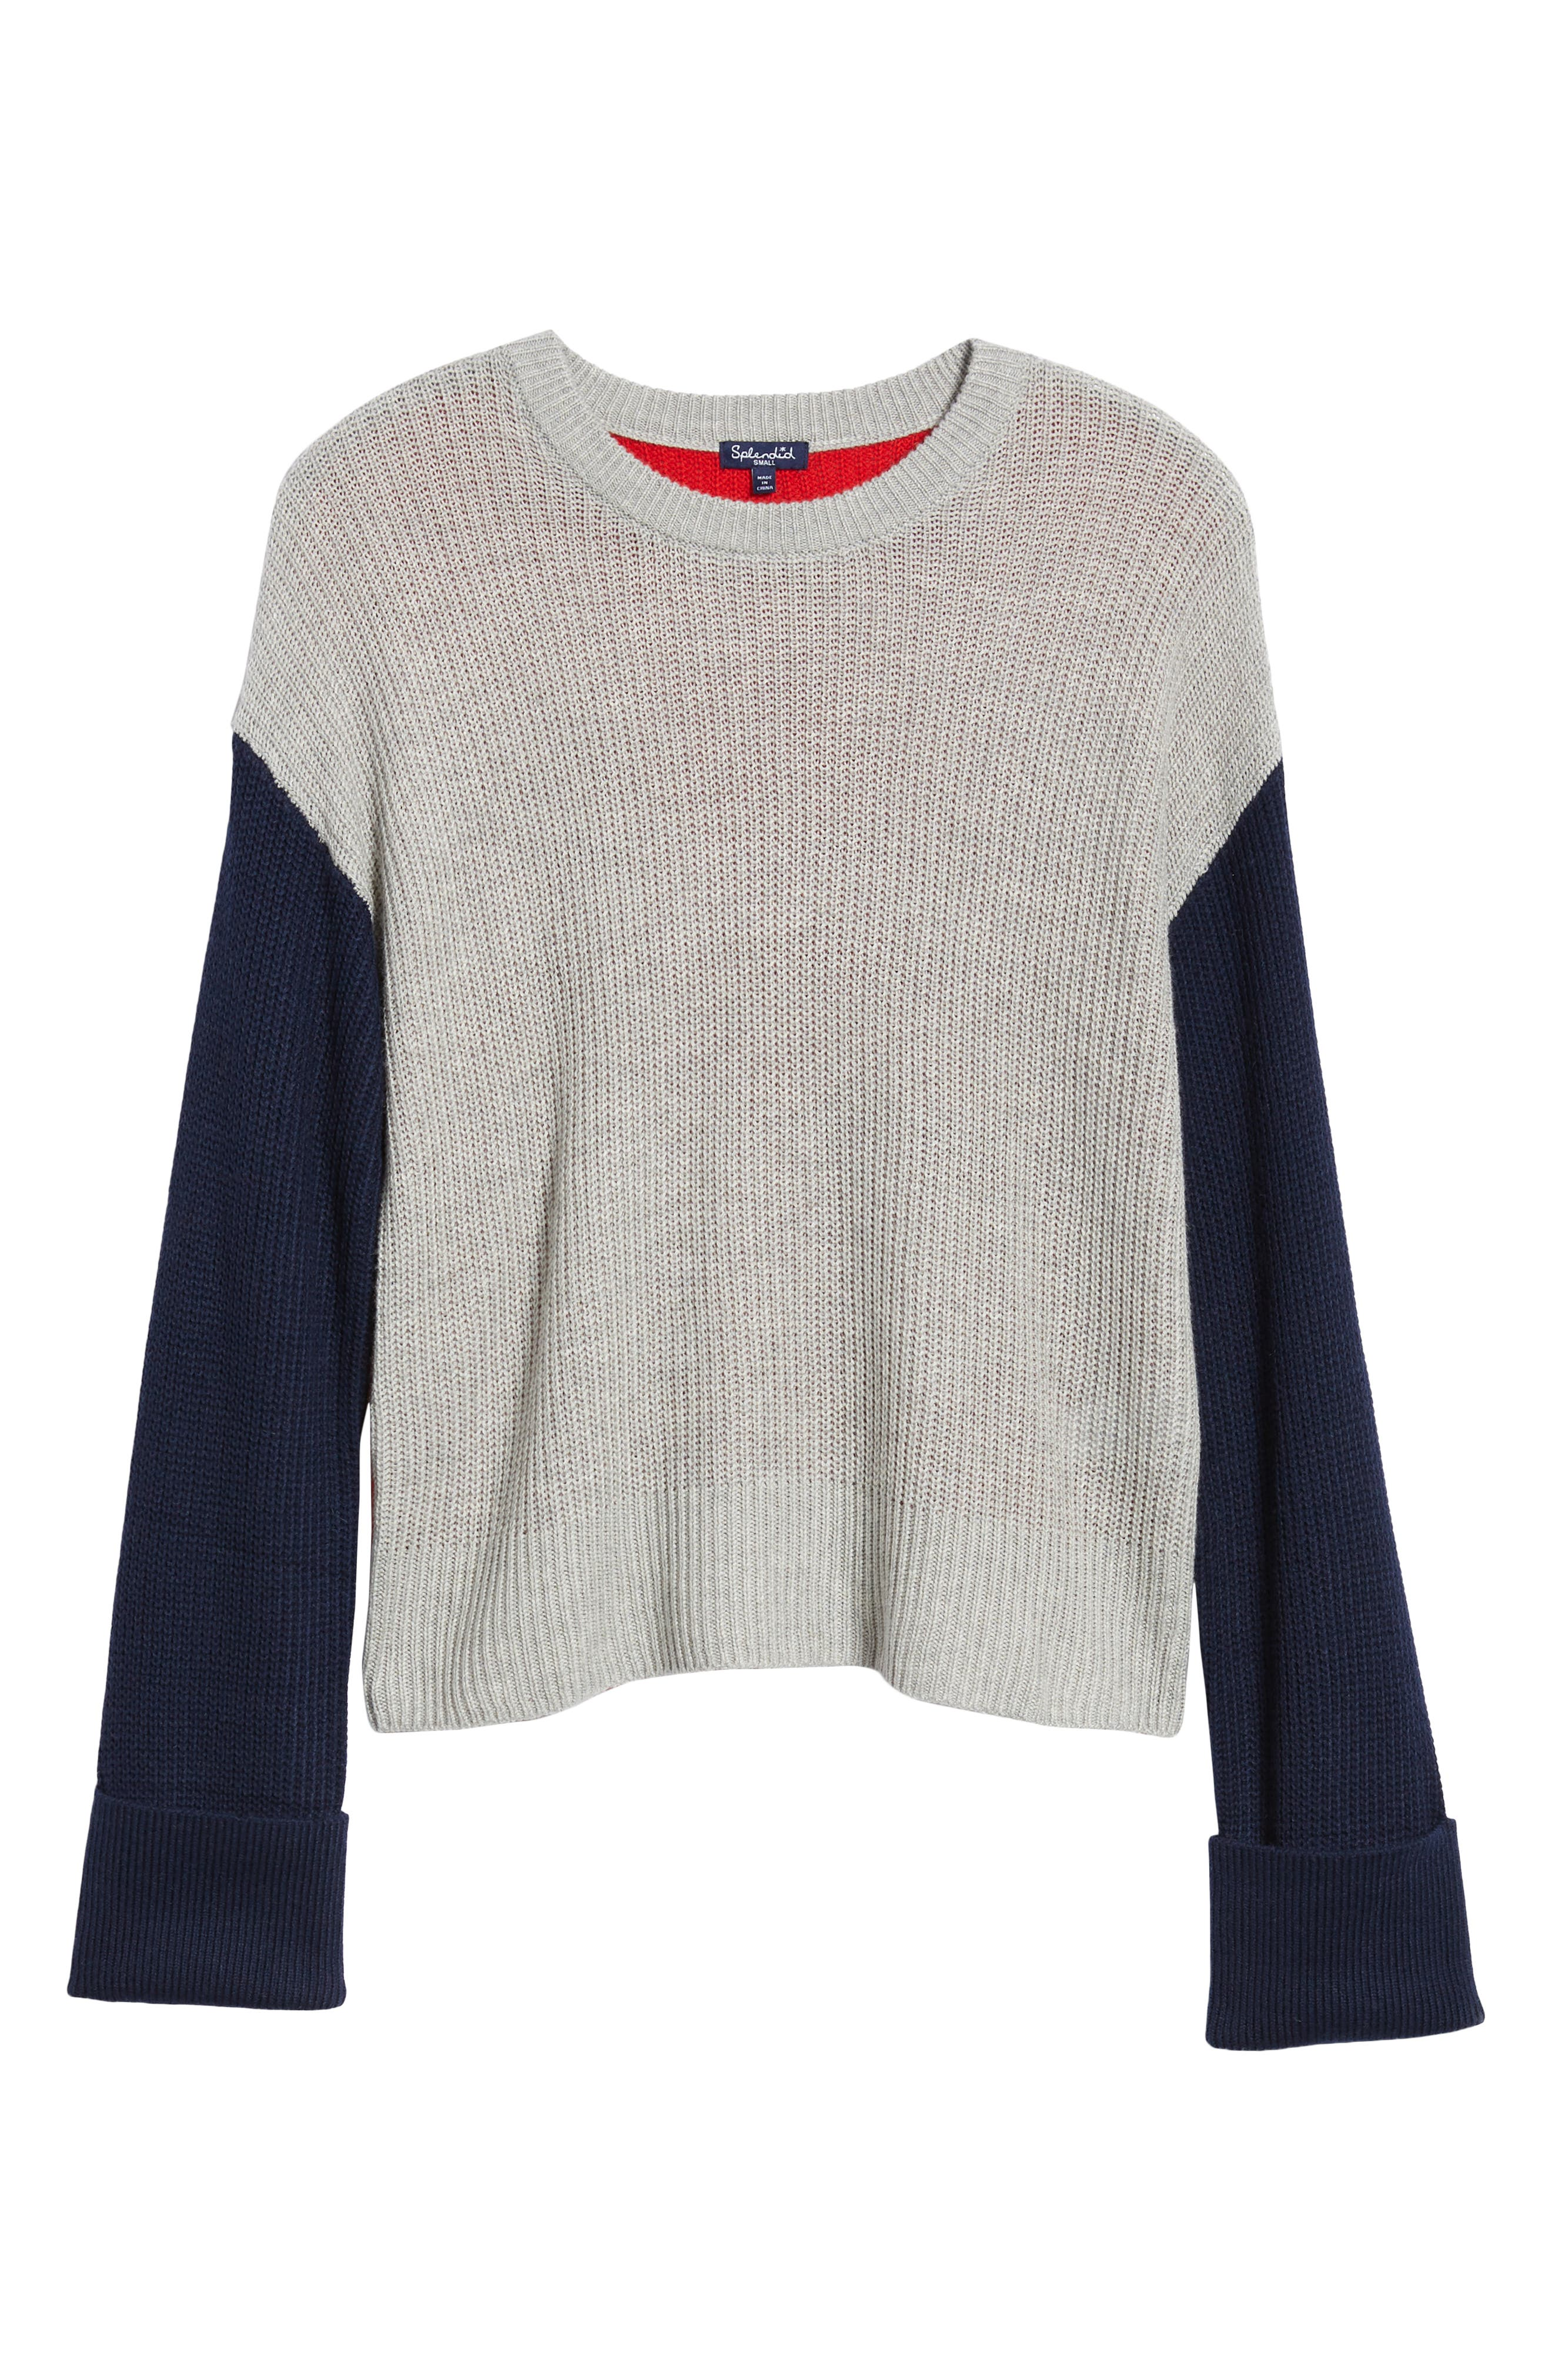 Colorblock Sweater,                             Alternate thumbnail 6, color,                             GREY/ NAVY